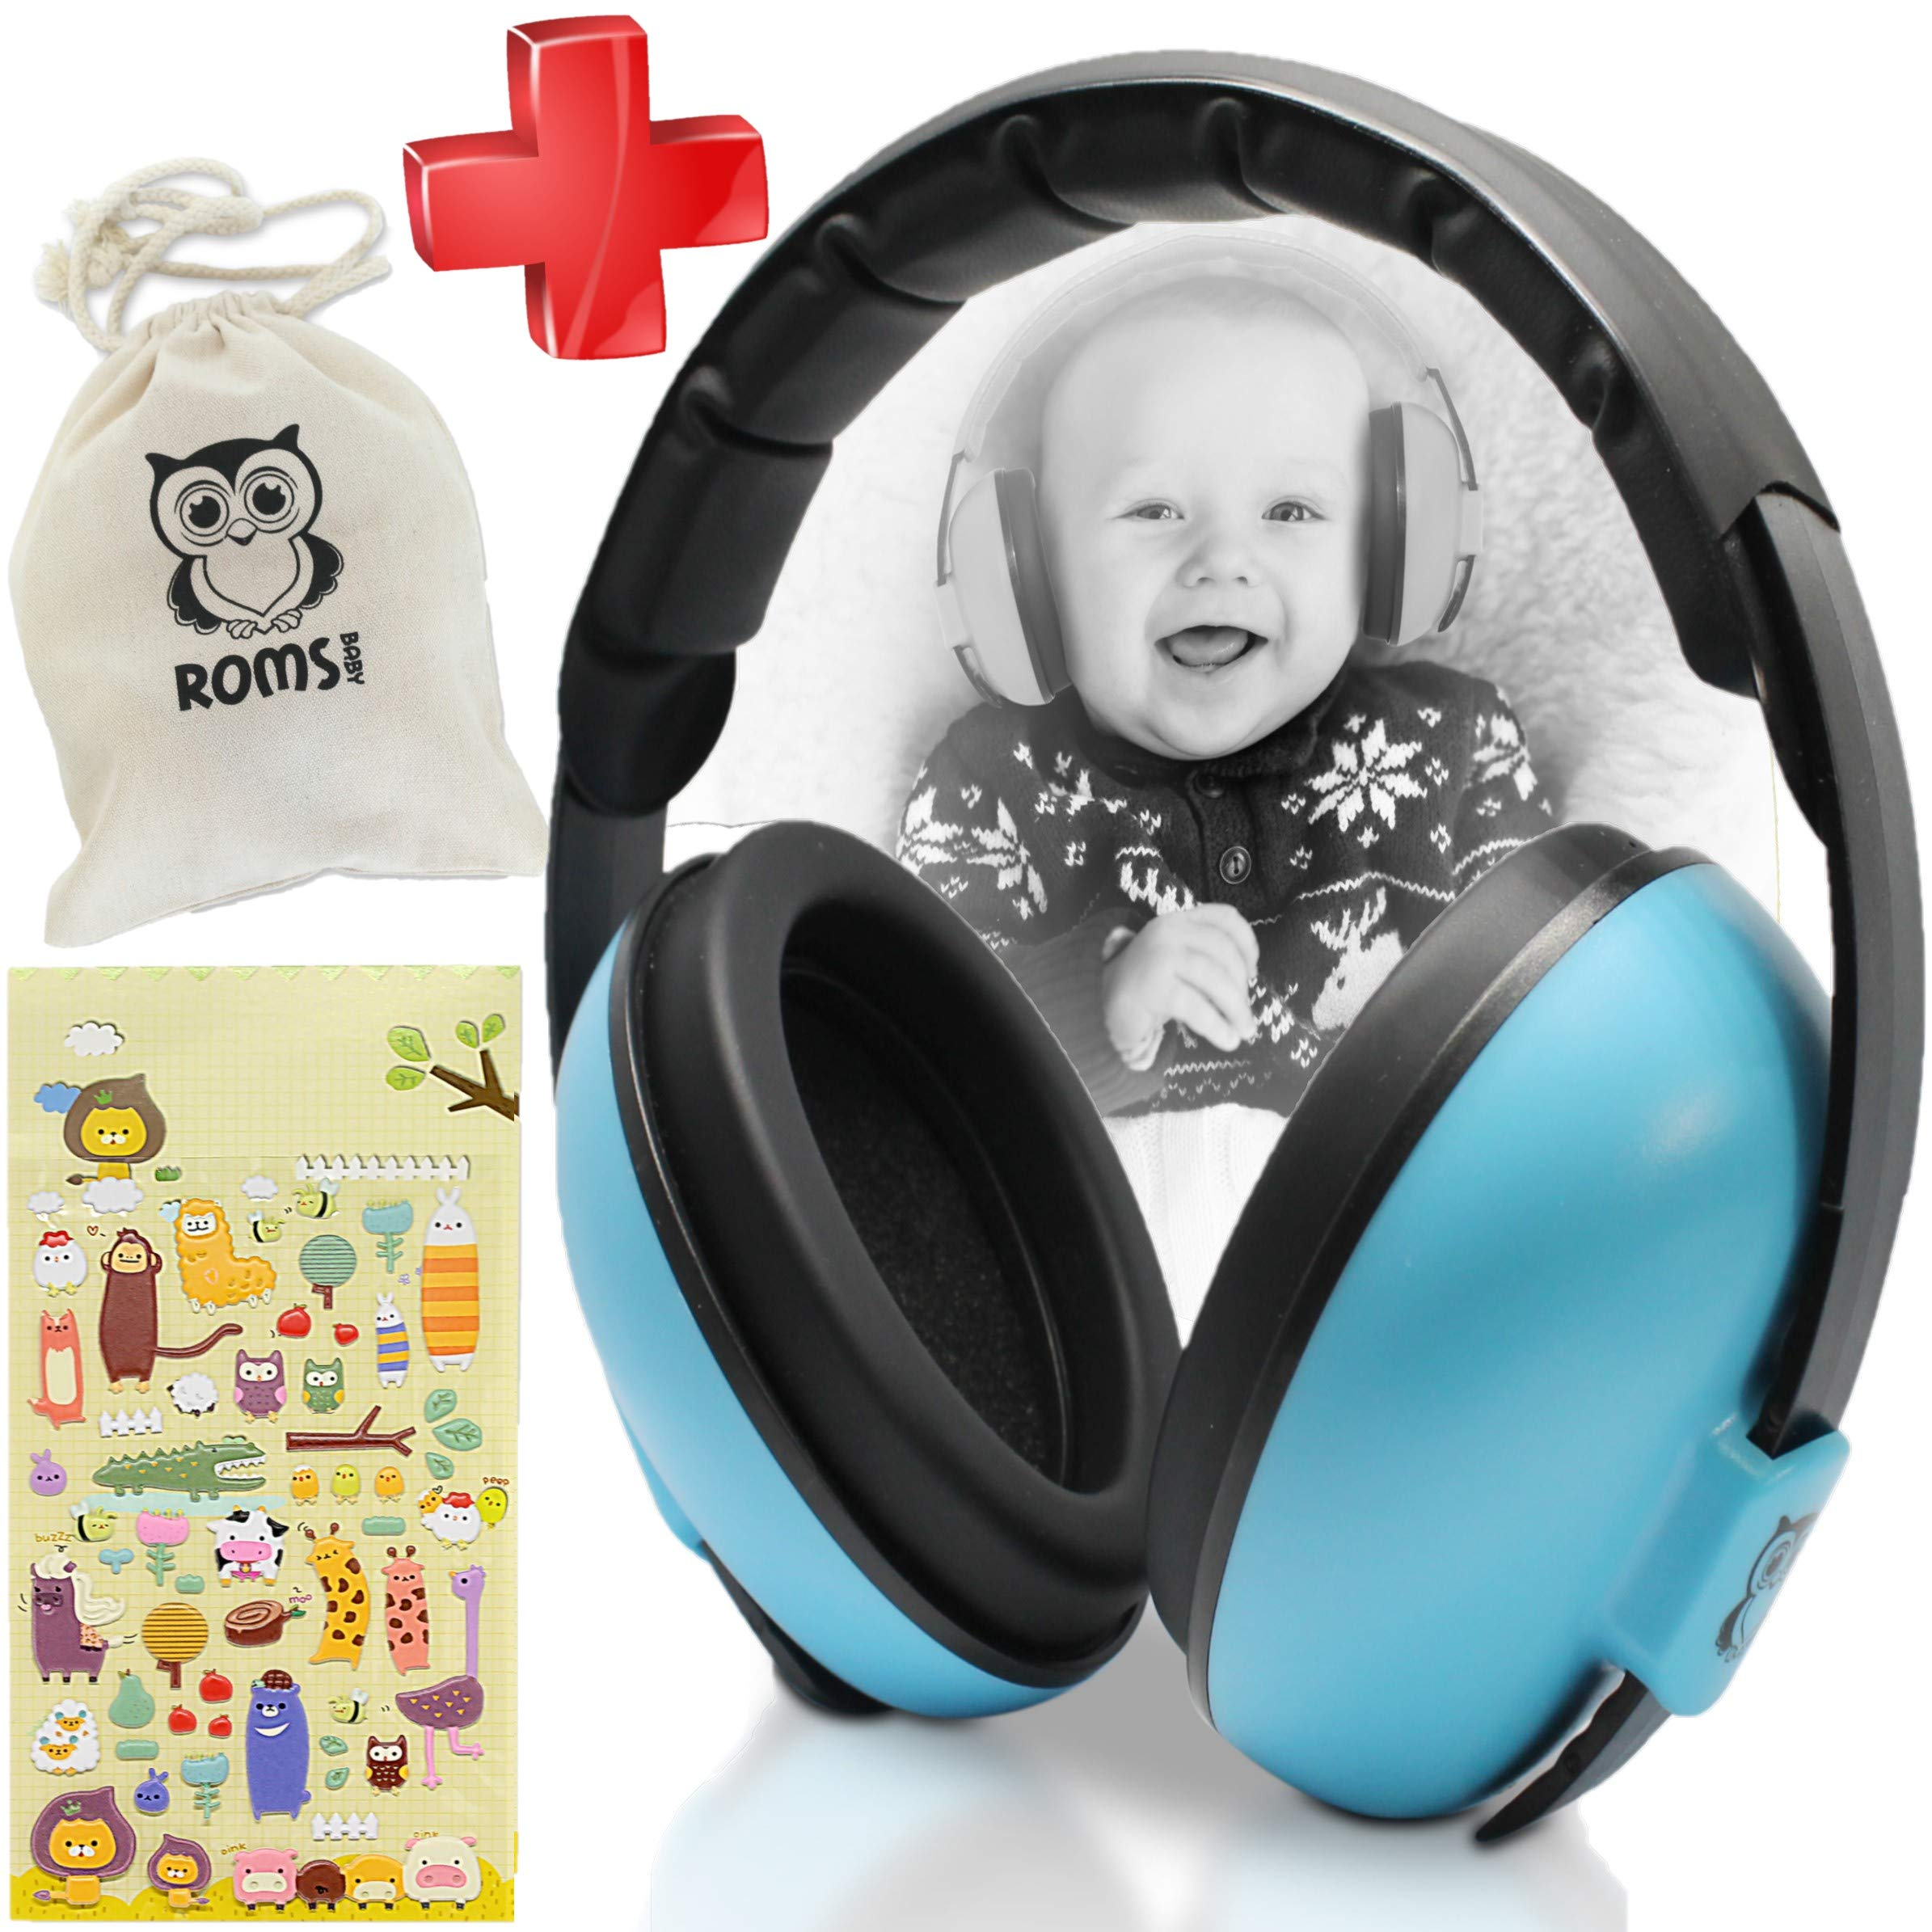 Noise Cancelling Baby Ear Protection Baby Earmuffs ~ Protect Infants and Kids Hearing with Safe, Sound Proof Ear Muffs ~ Comfort Fit + Bonus Travel Bag and Stickers by ROMS Baby (Blue)